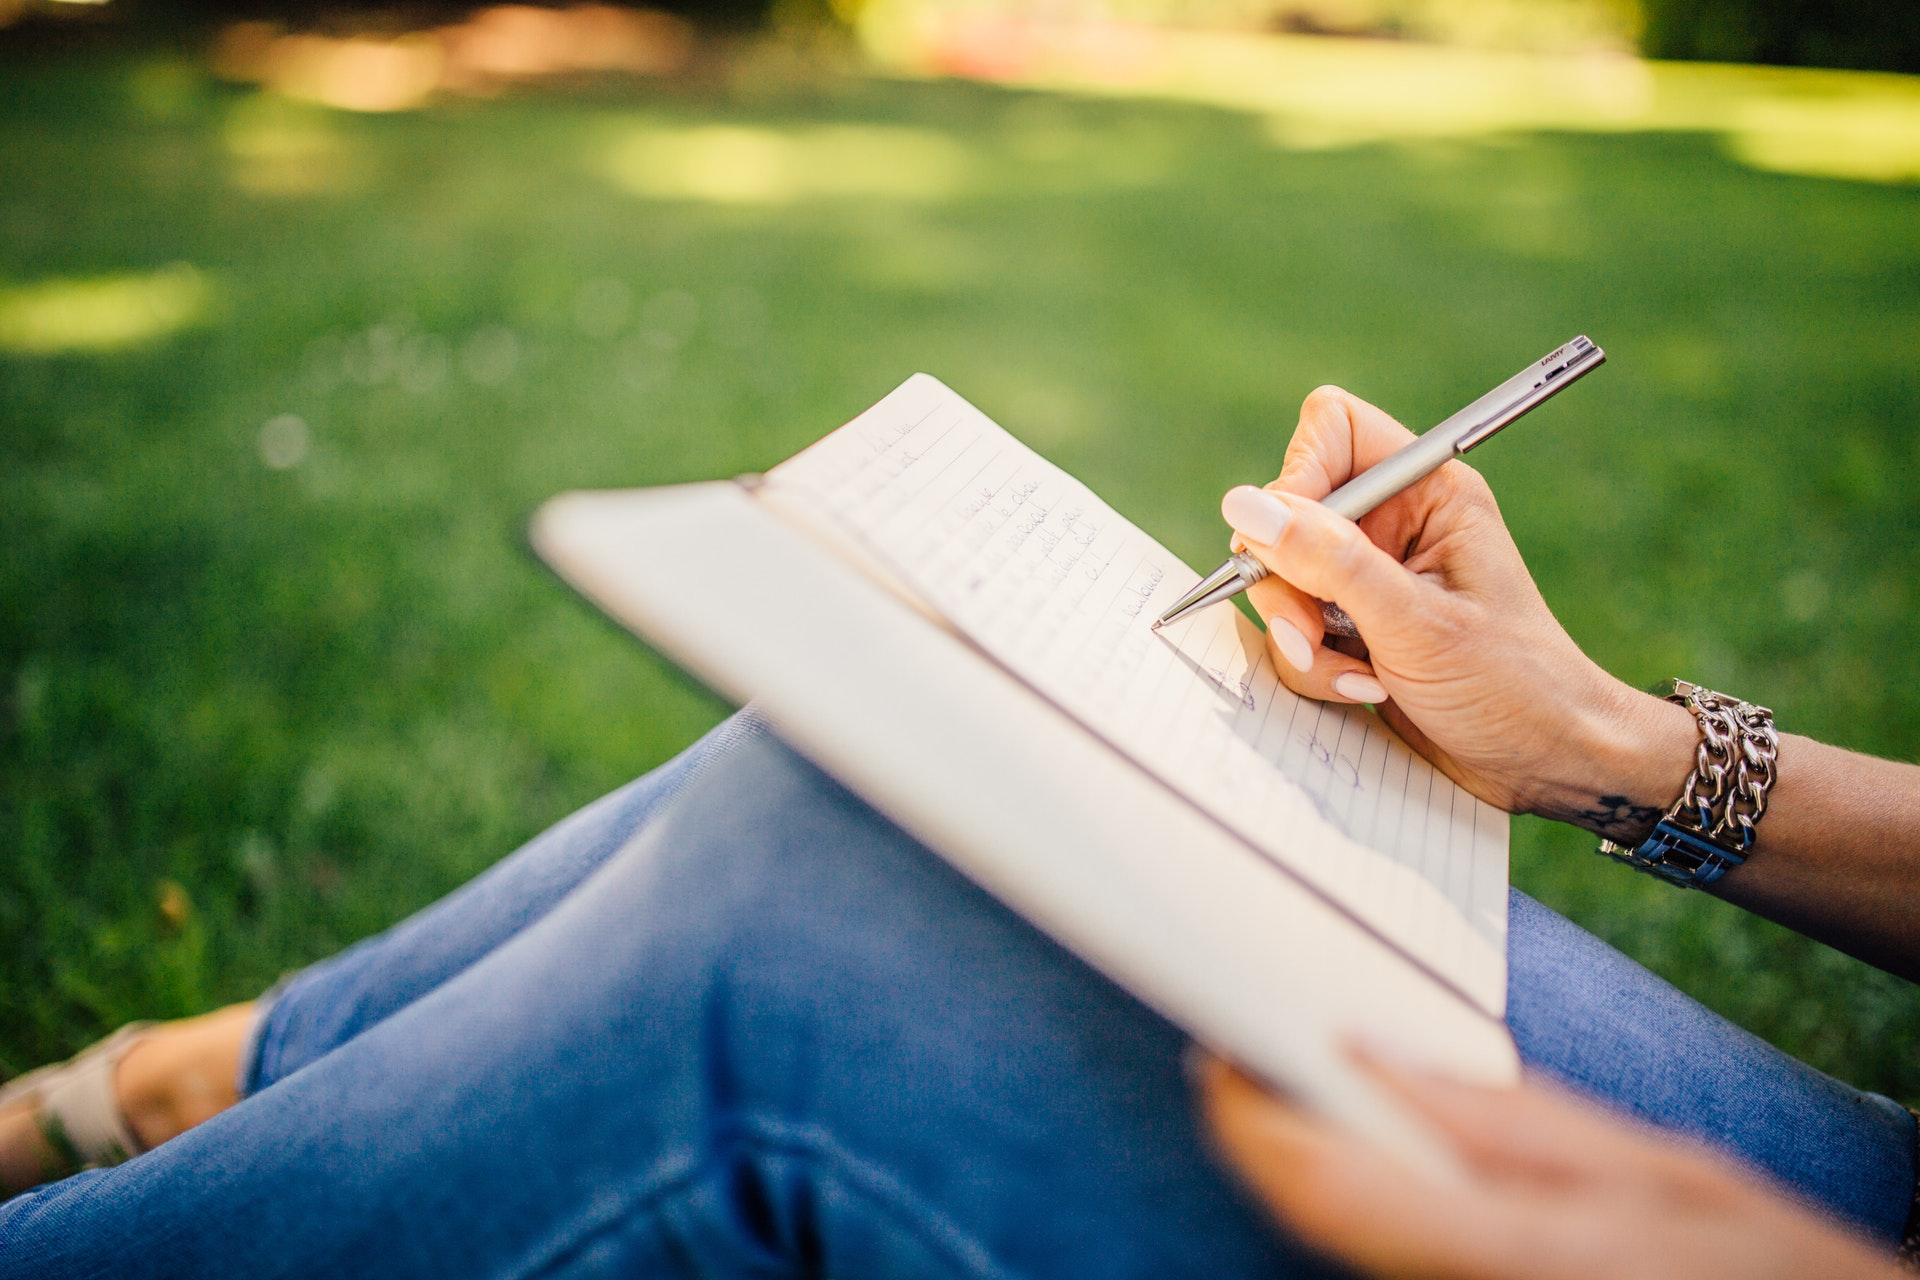 A woman sitting in the grass holding a notebook and pen.